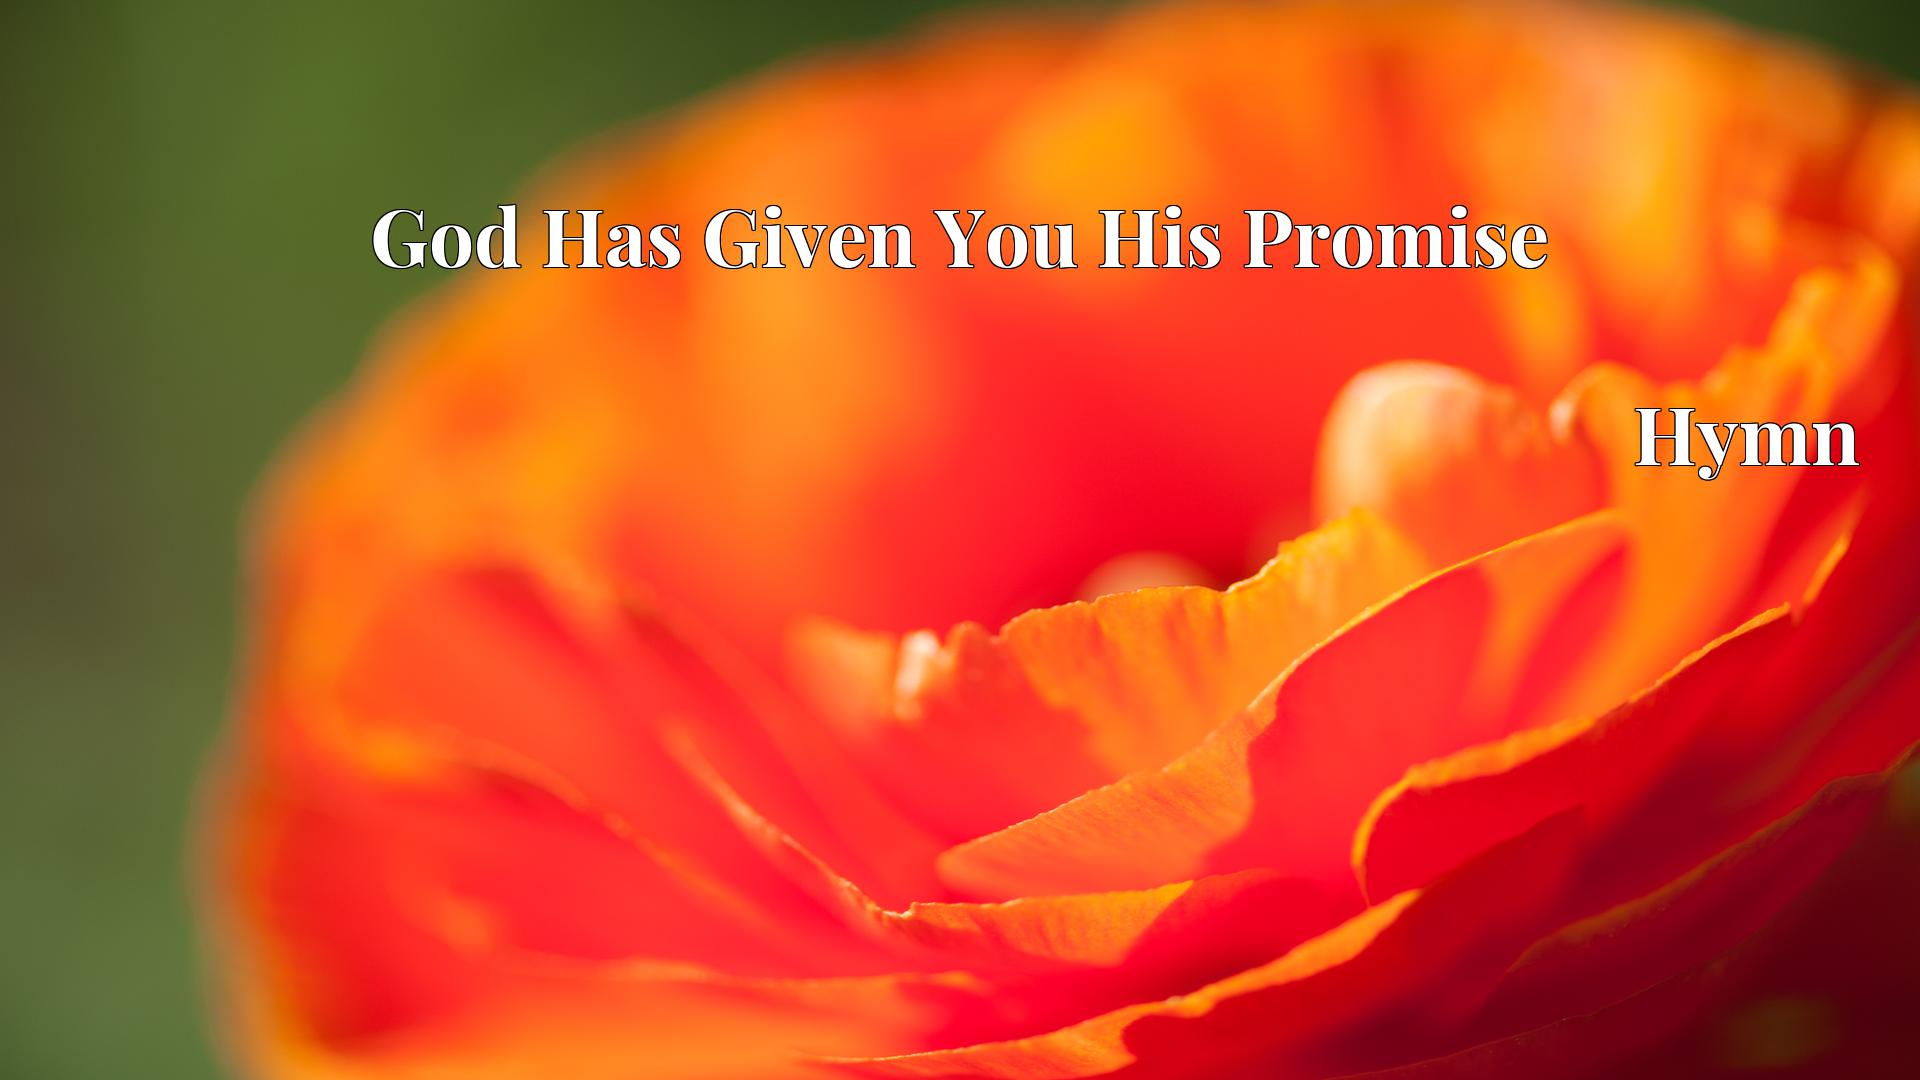 God Has Given You His Promise - Hymn